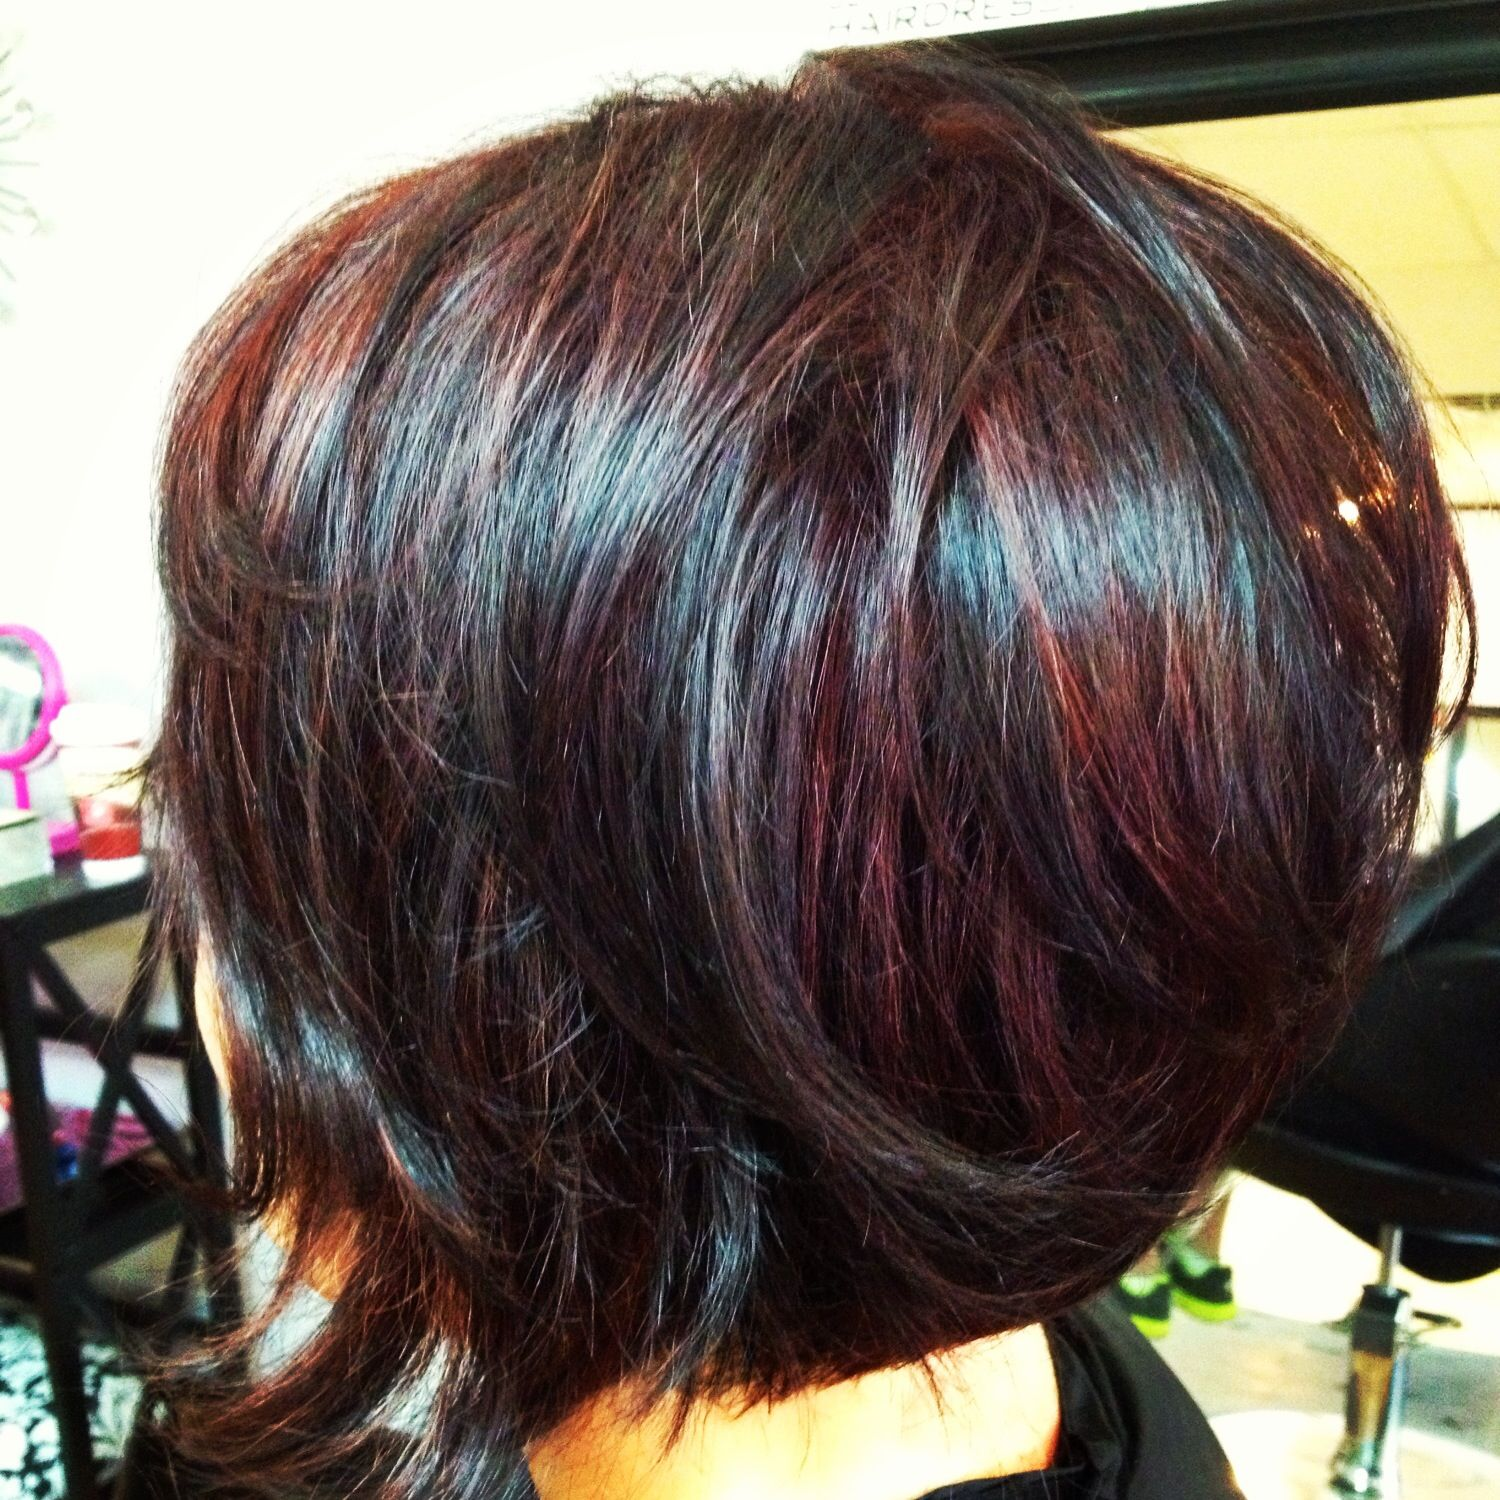 Dark Cherry Red with Black Dimension | Hairstyles | Pinterest ...